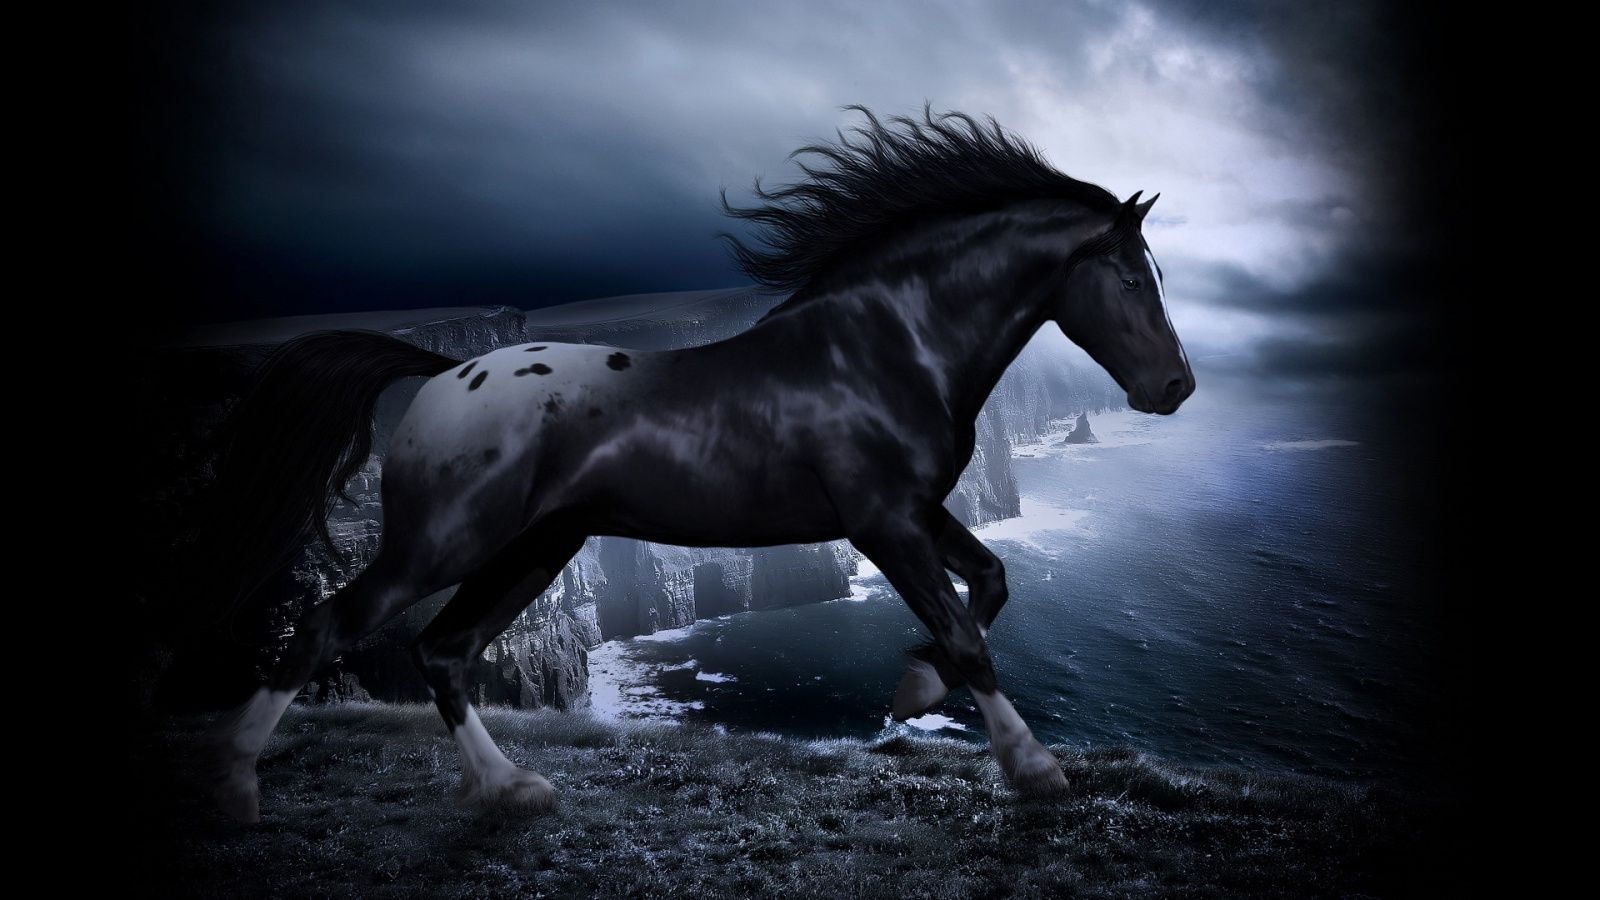 Black Spotted Horse With Images Horse Wallpaper Horses Fantasy Horses